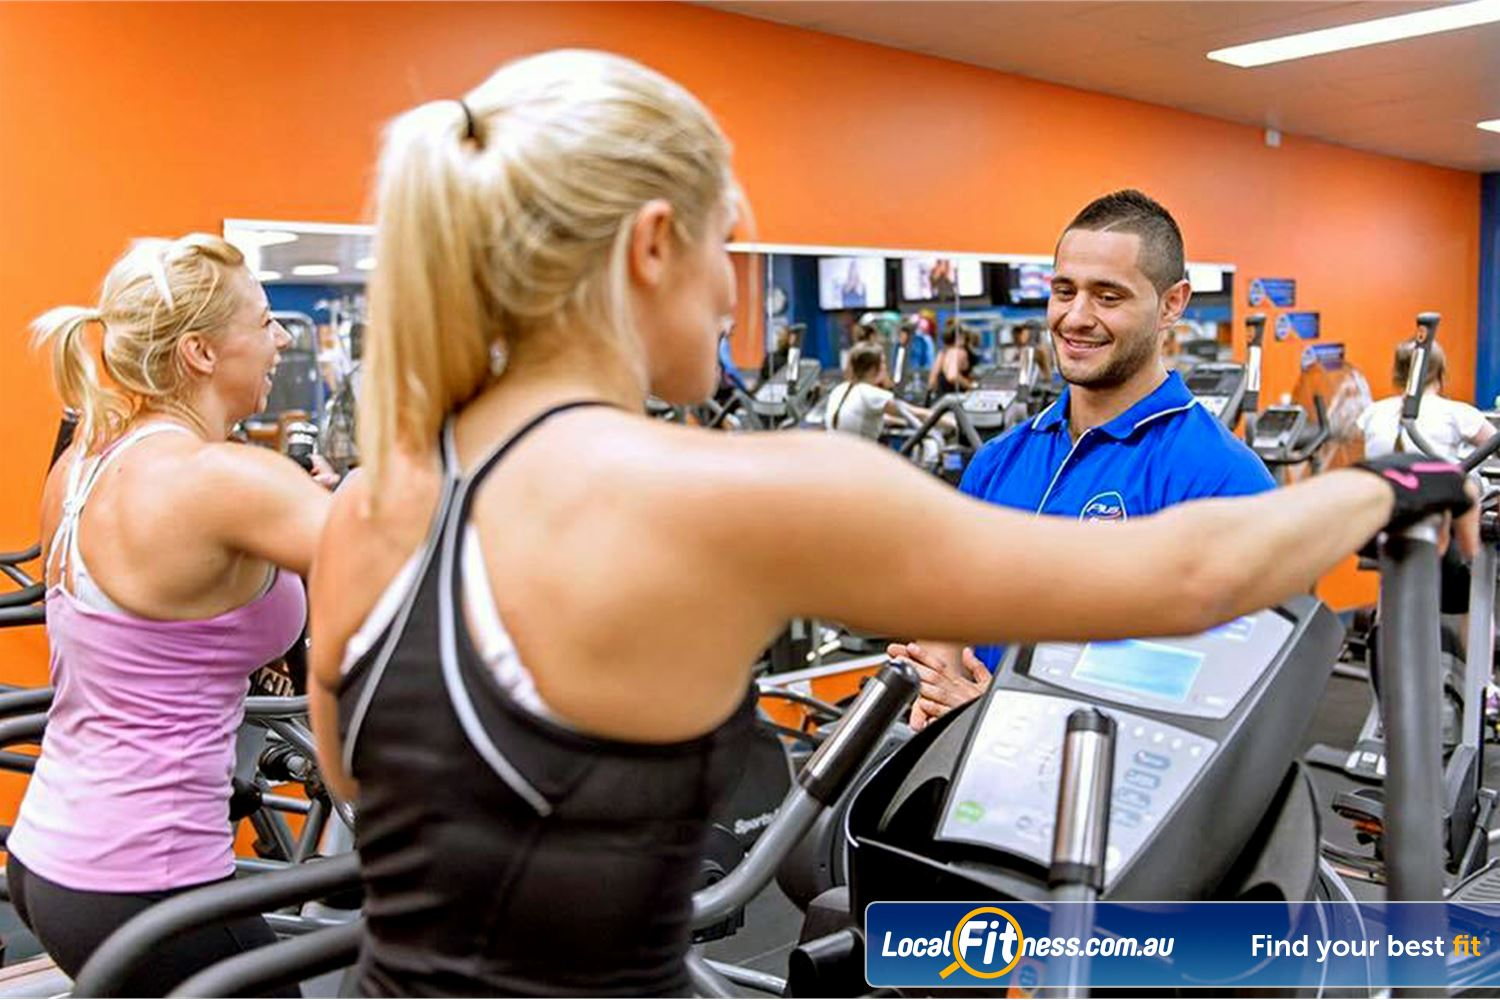 Plus Fitness Health Clubs Near Merrylands Our Northmead gym team can design a cardio workout to suit you.